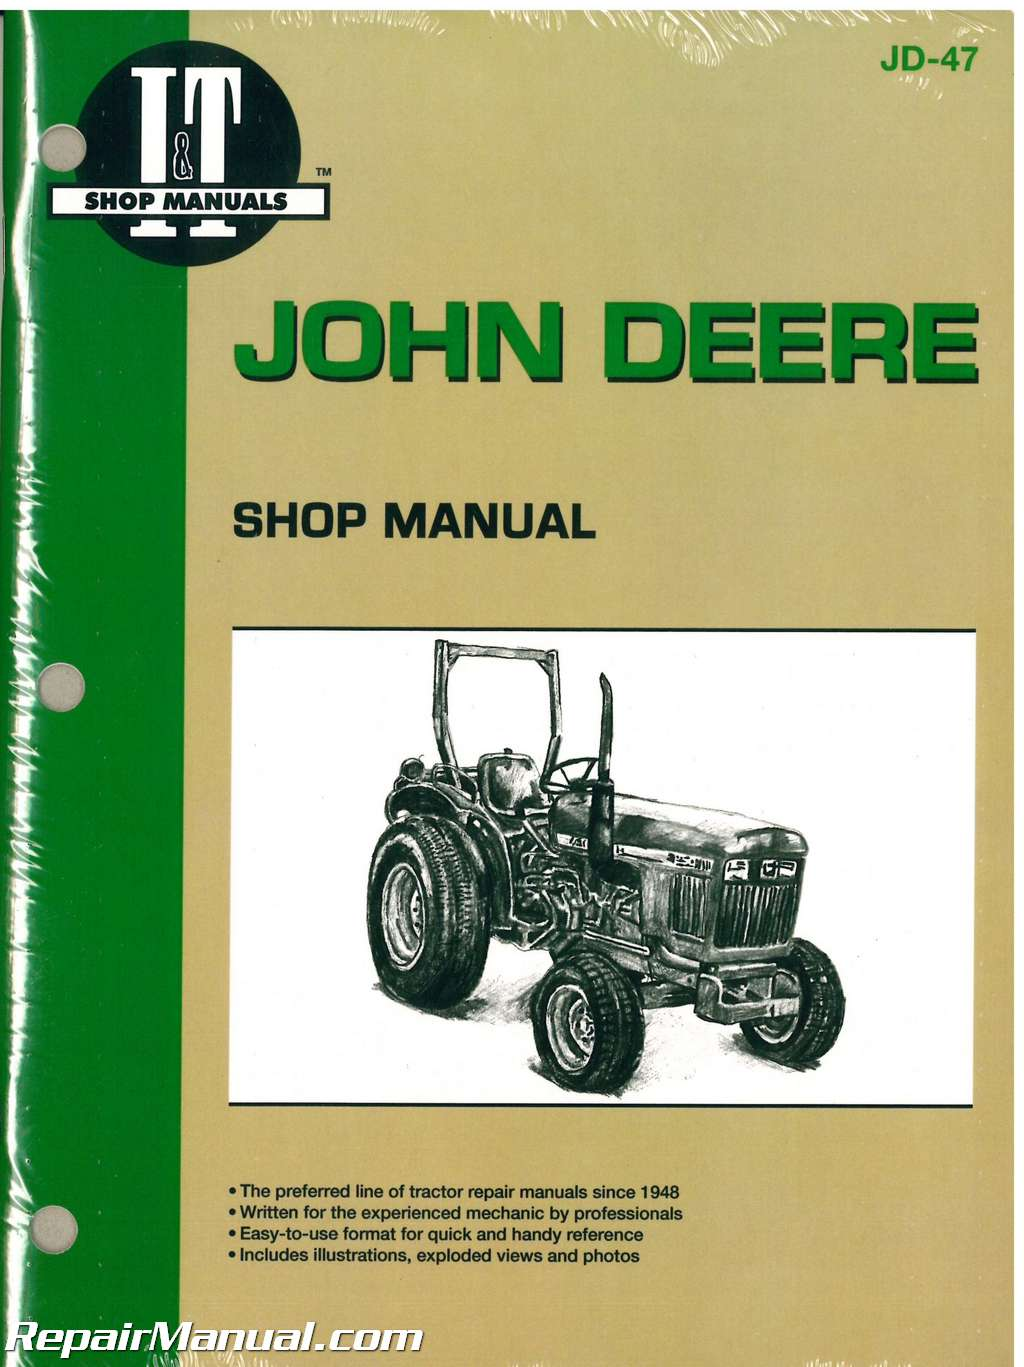 John Deere 850 950 1050 Farm Tractor Workshop Manual